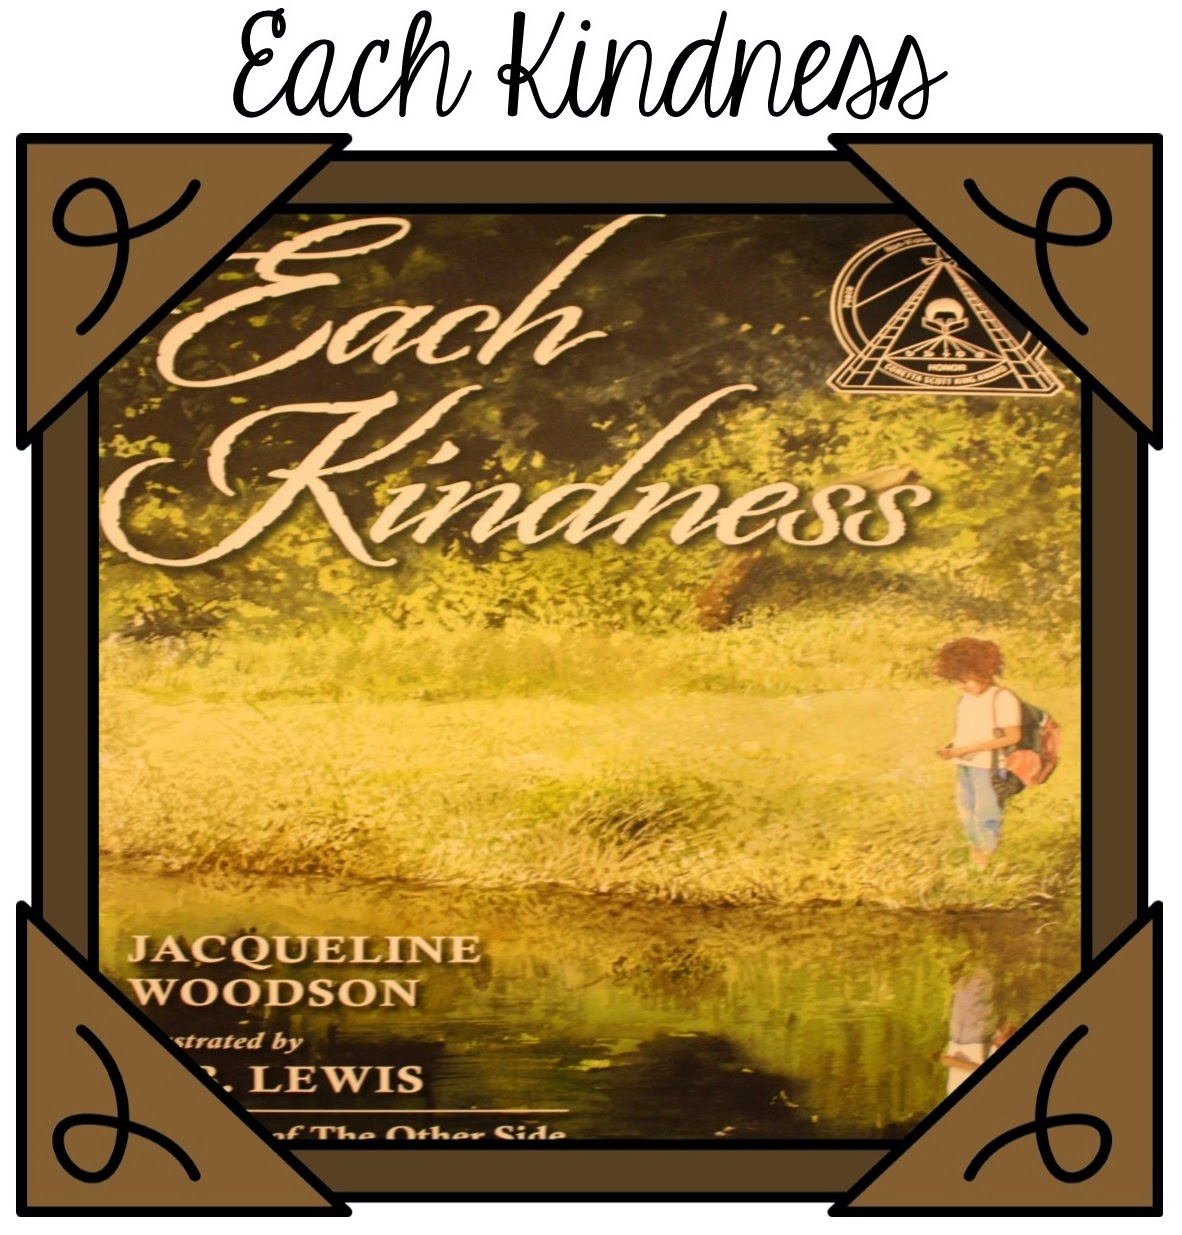 http://www.amazon.com/Each-Kindness-Addams-Award-Awards/dp/0399246525/ref=sr_1_1?ie=UTF8&qid=1421621416&sr=8-1&keywords=Each+Kindness